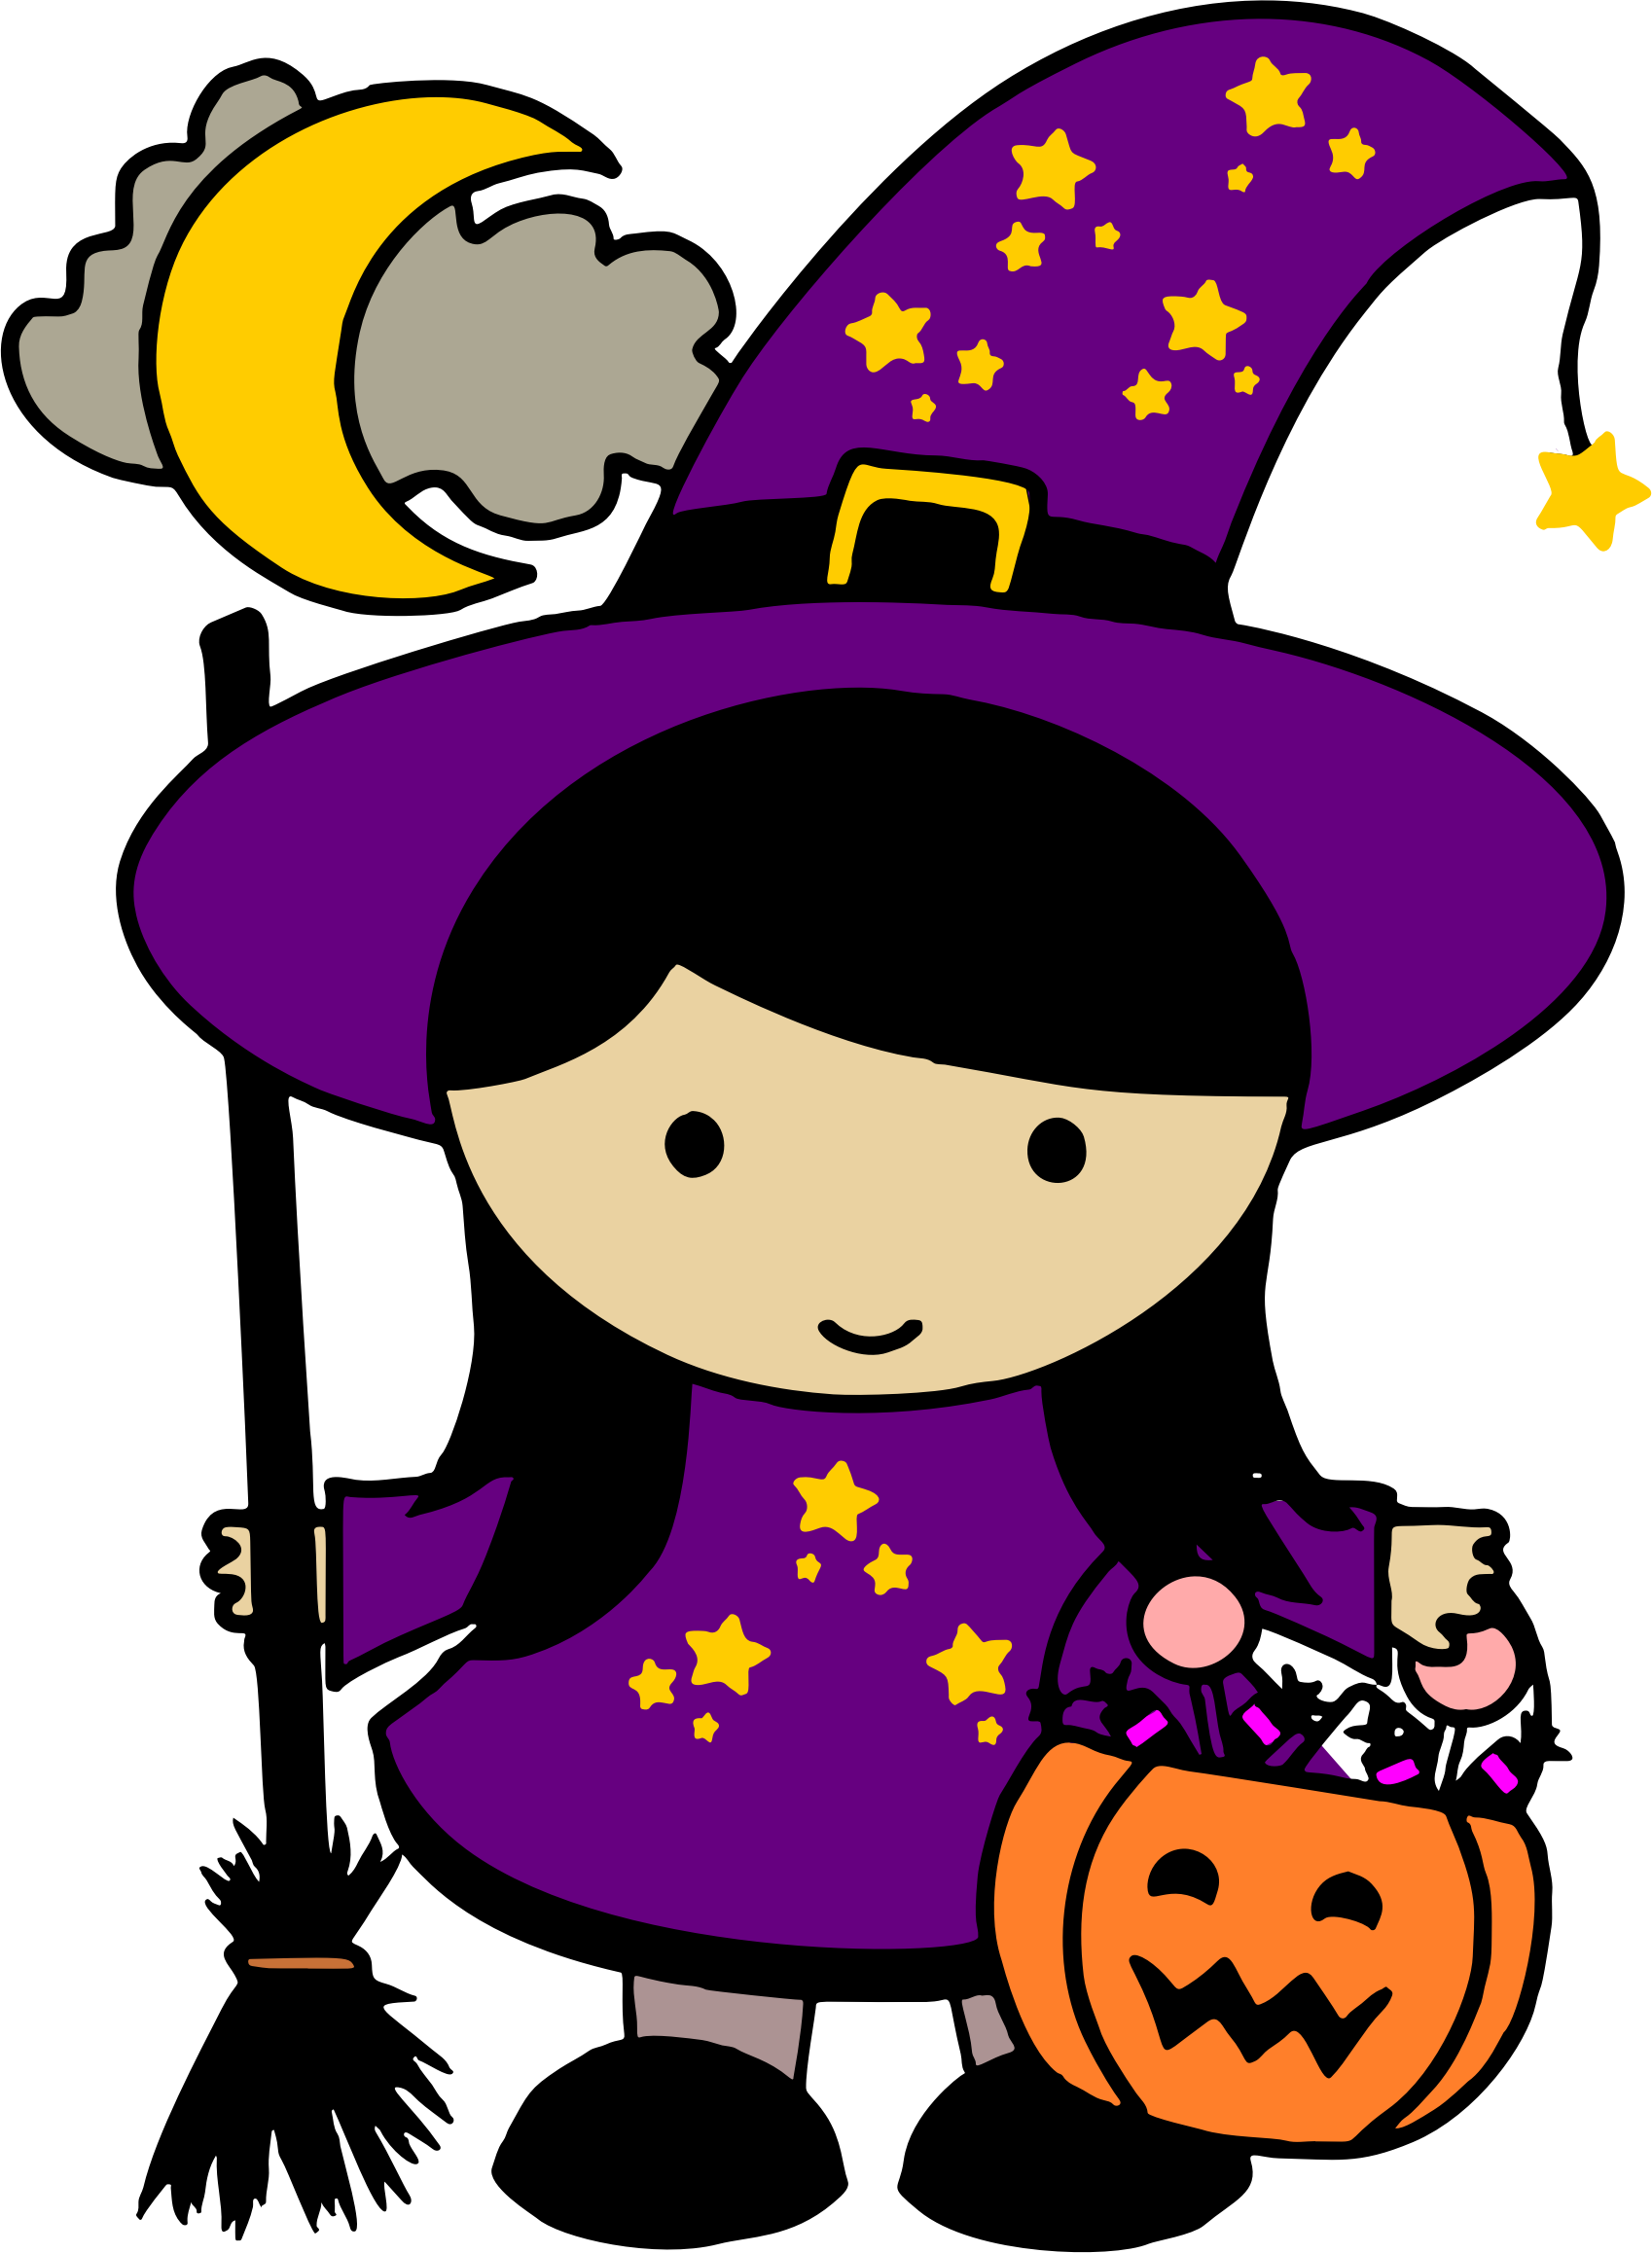 Colored big image png. Witch clipart cute halloween character